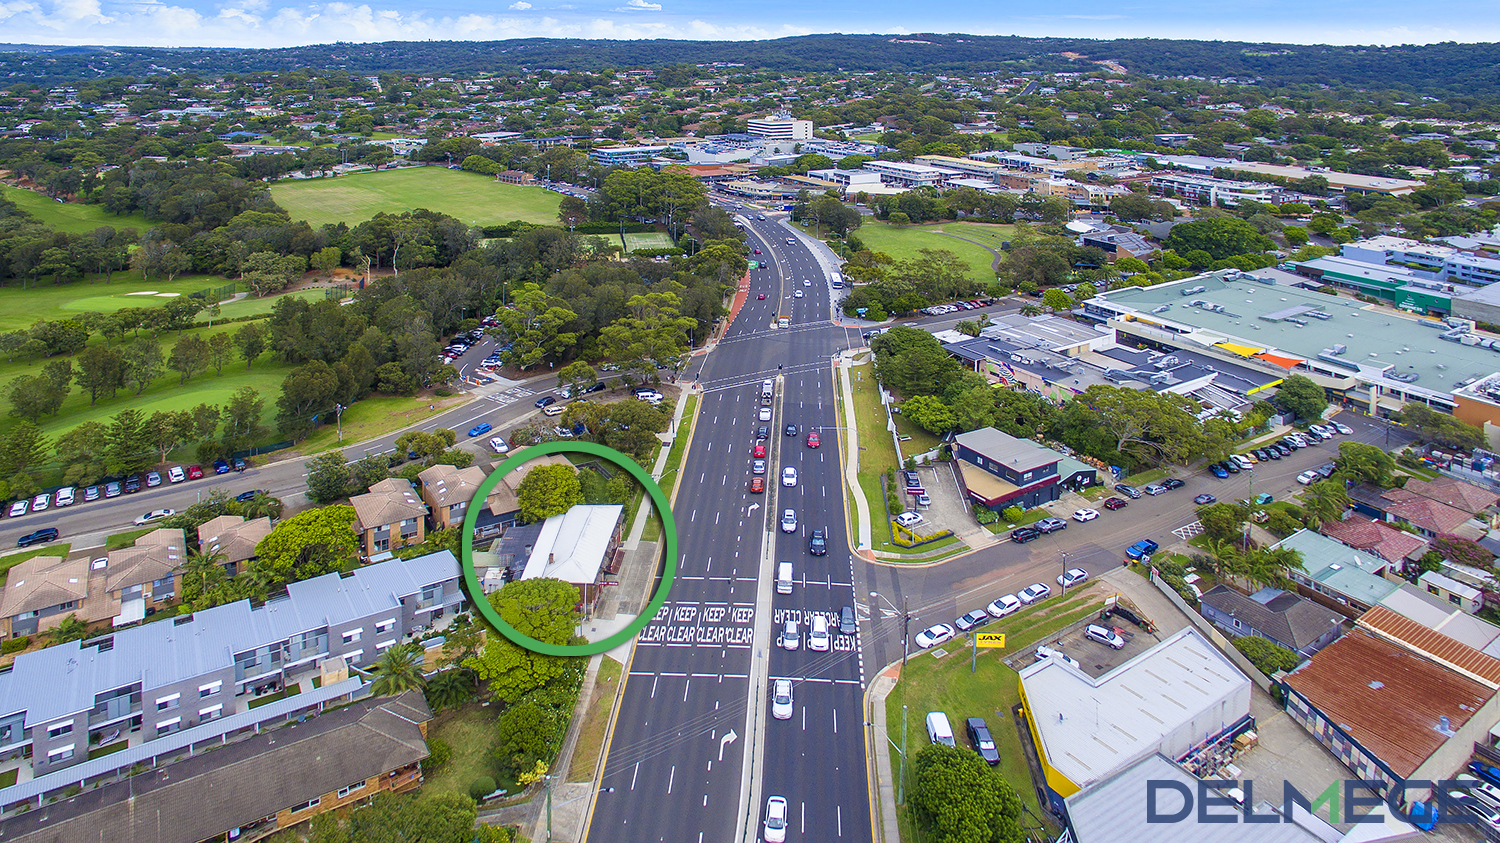 Commercial property for sale in Mona Vale